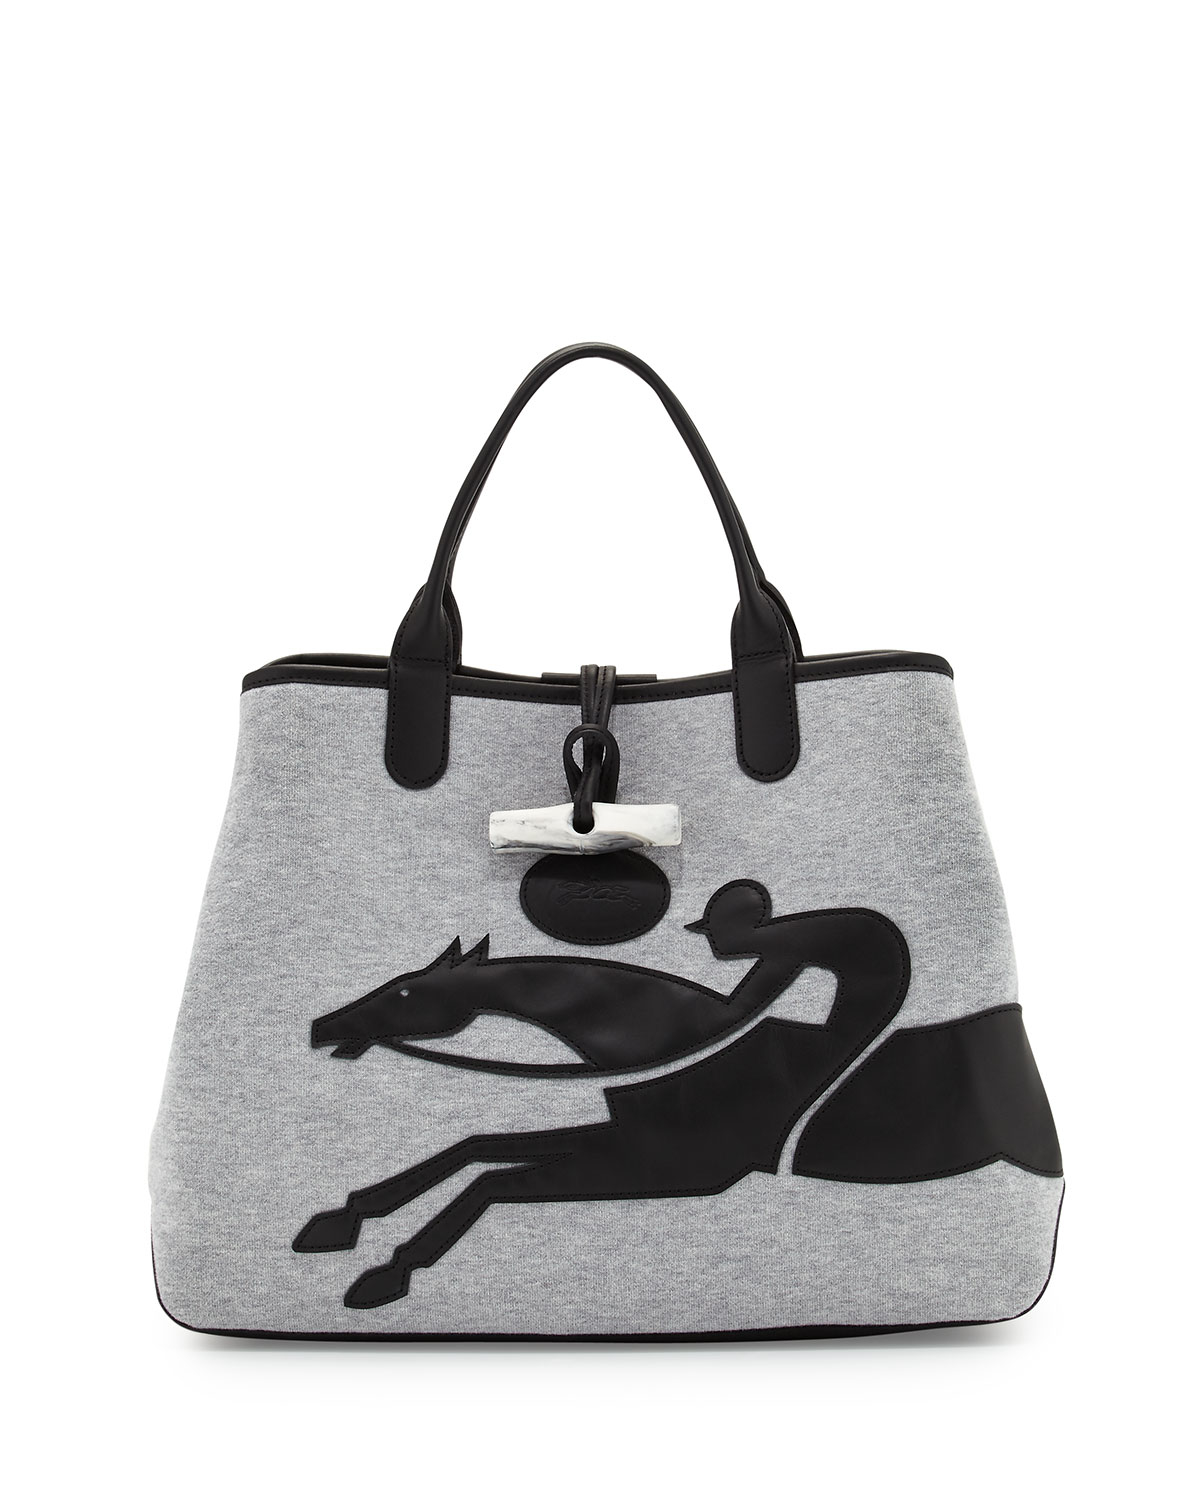 Lyst - Longchamp Roseau Sweet Reversible Large Tote Bag in Gray 2d6dc8e62aedc